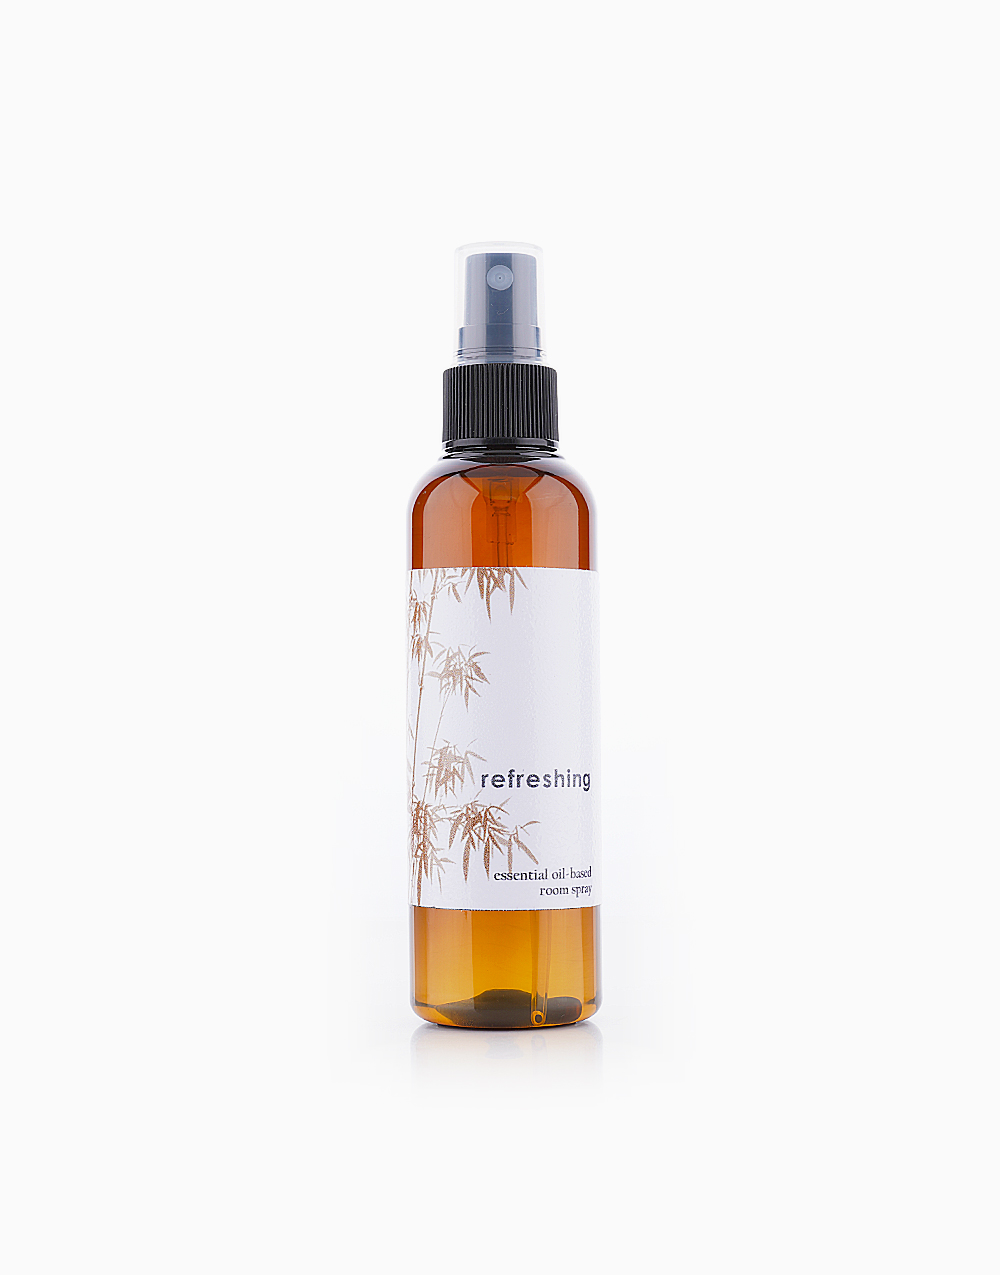 Refreshing Natural (Essential Oil-Based) Room Spray (85ml) by Calyx Life & Home